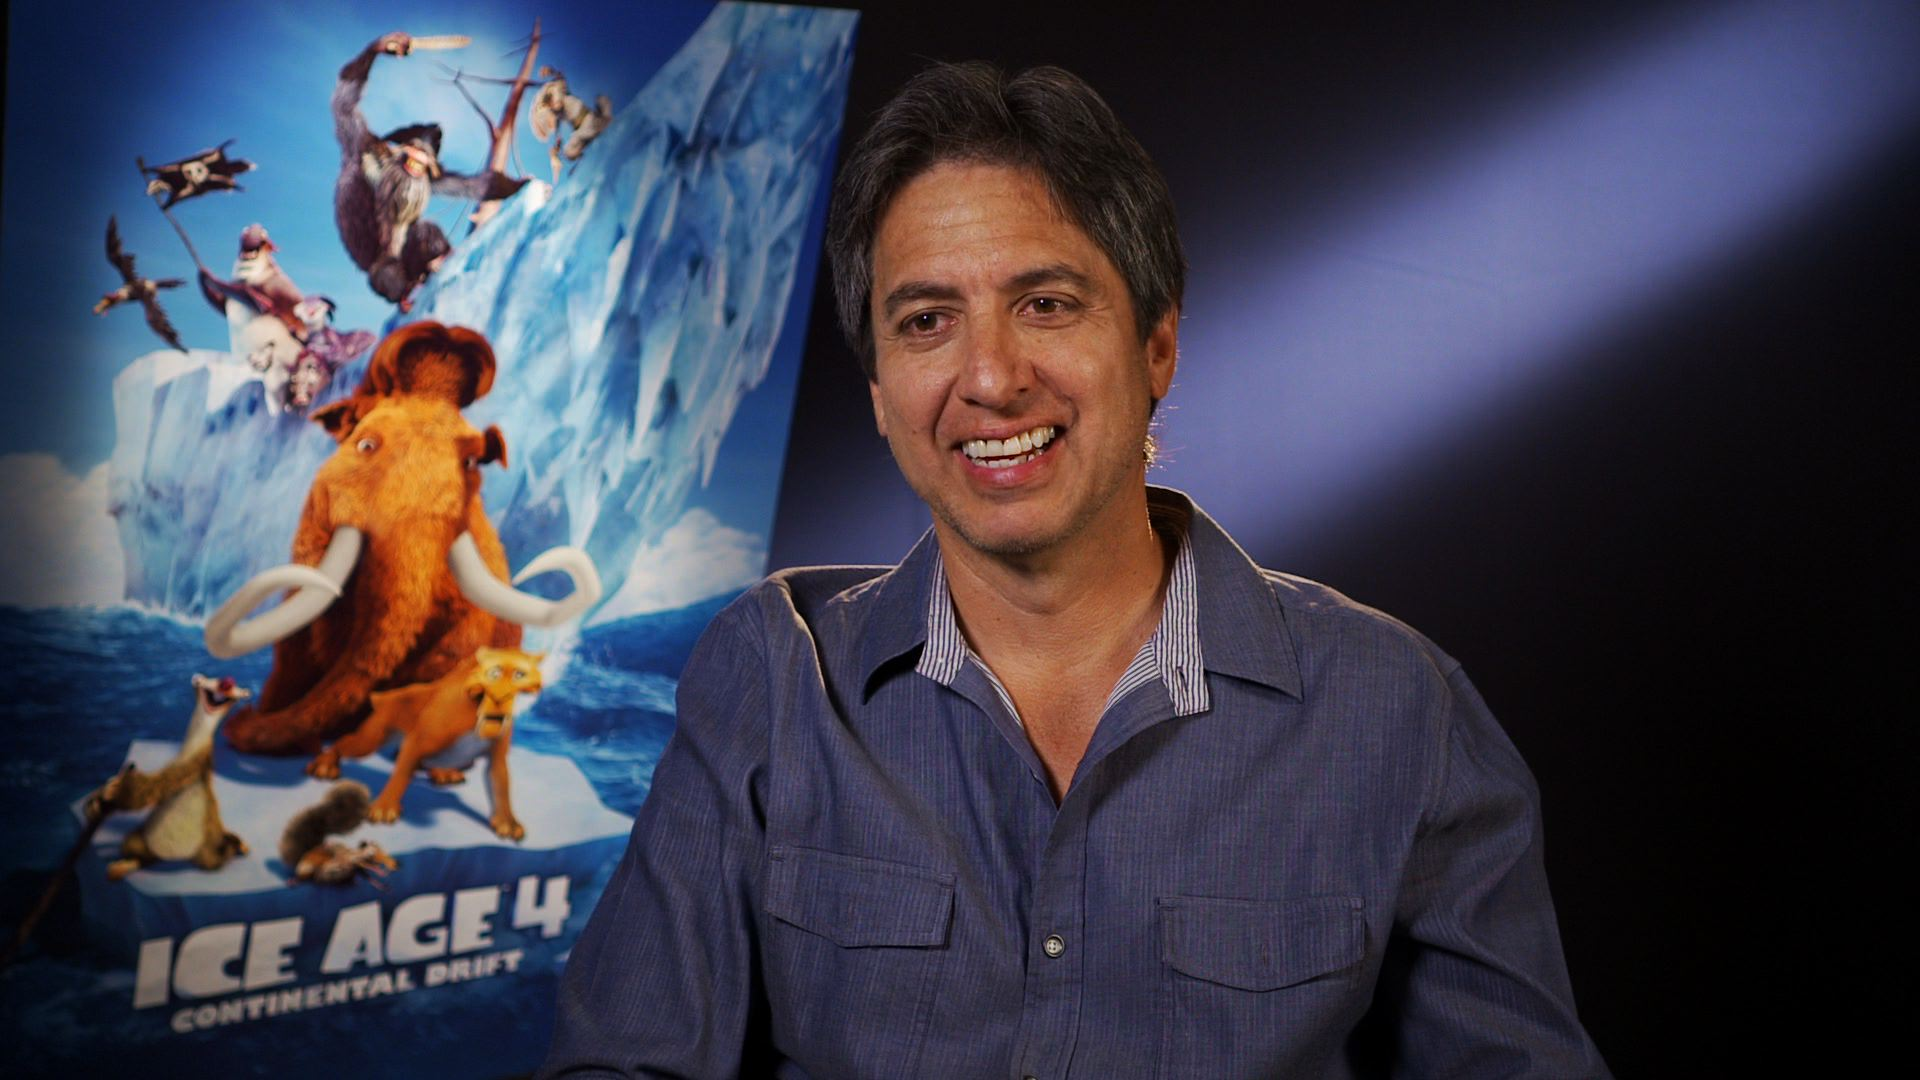 Ray Romano: Short Biography, Net Worth & Career Highlights